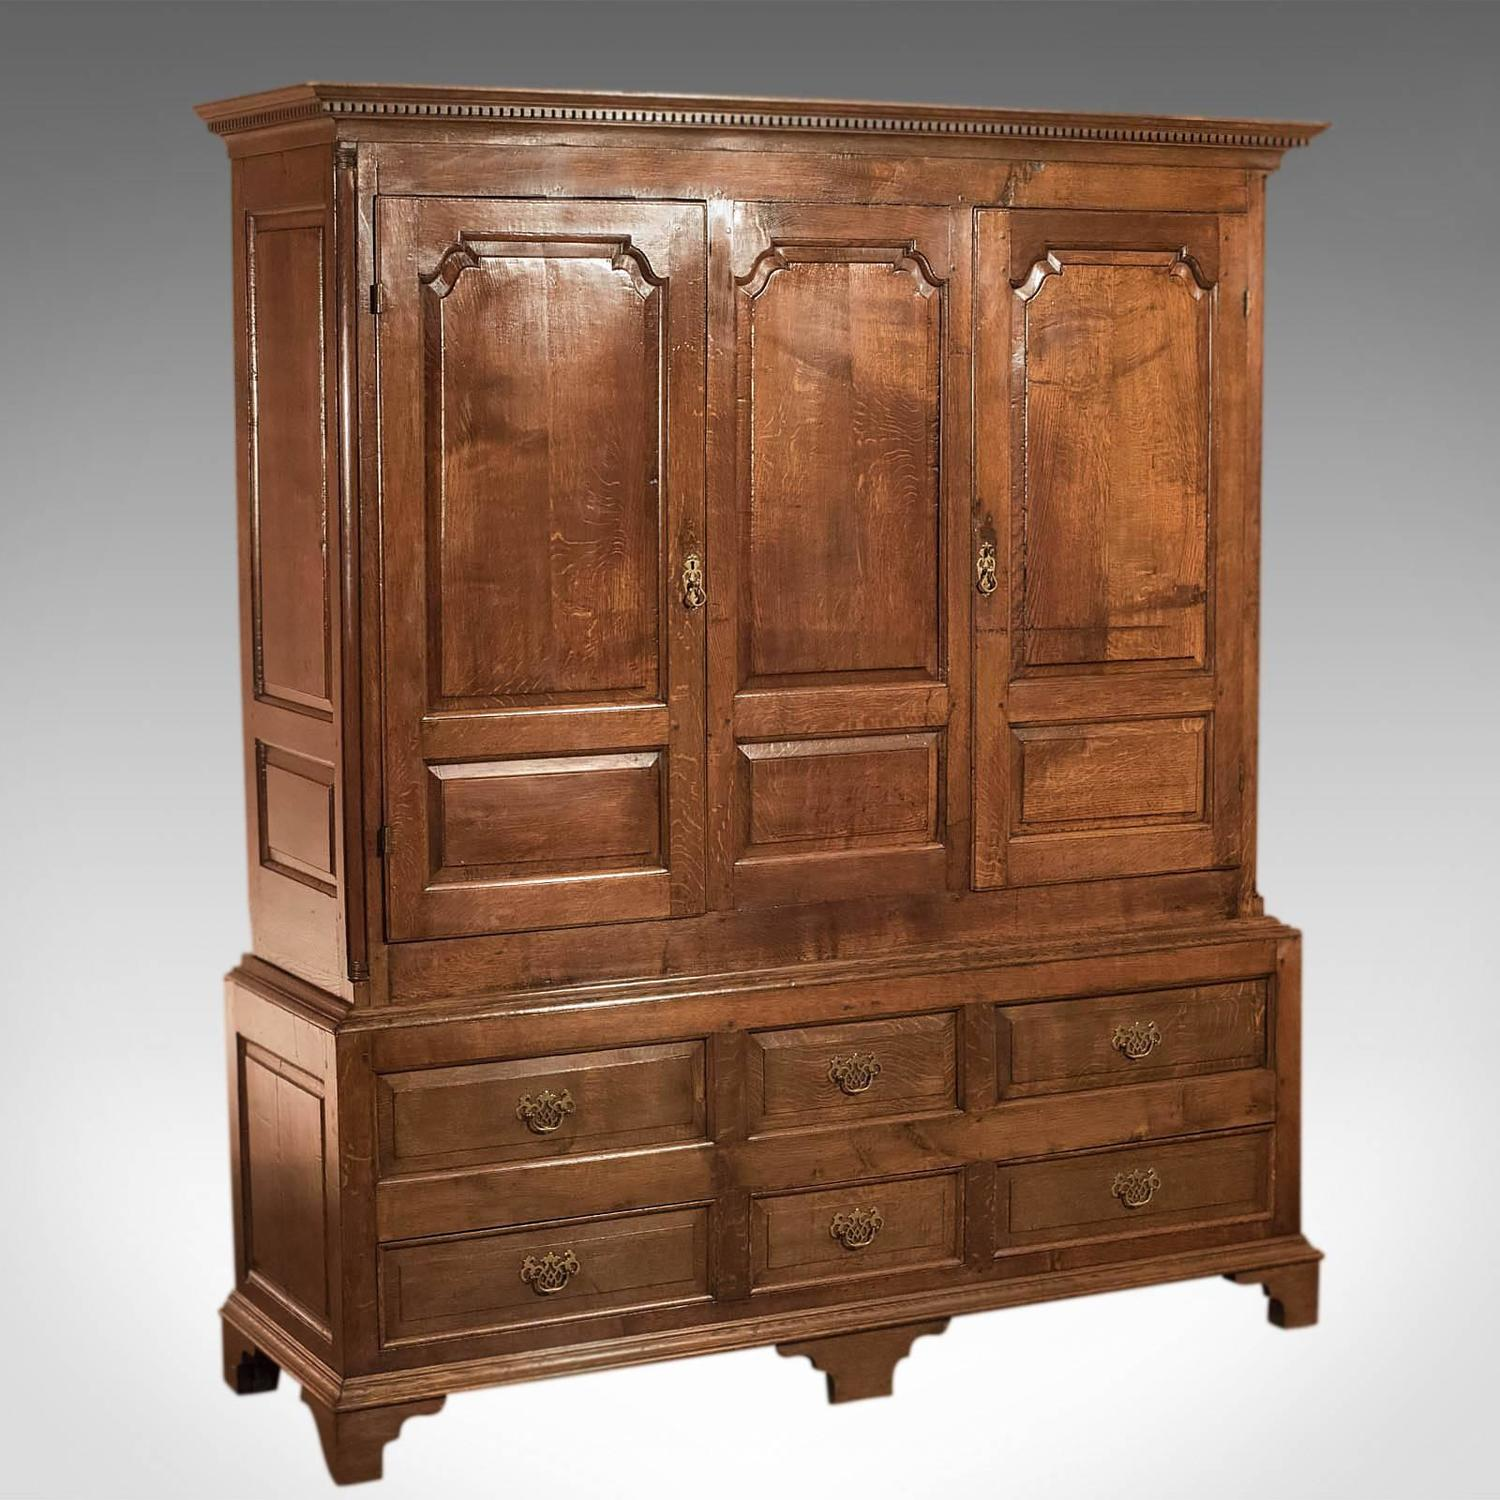 armoires information wardrobes loveantiques learn com of on about selection antique knowledge a wardrobe